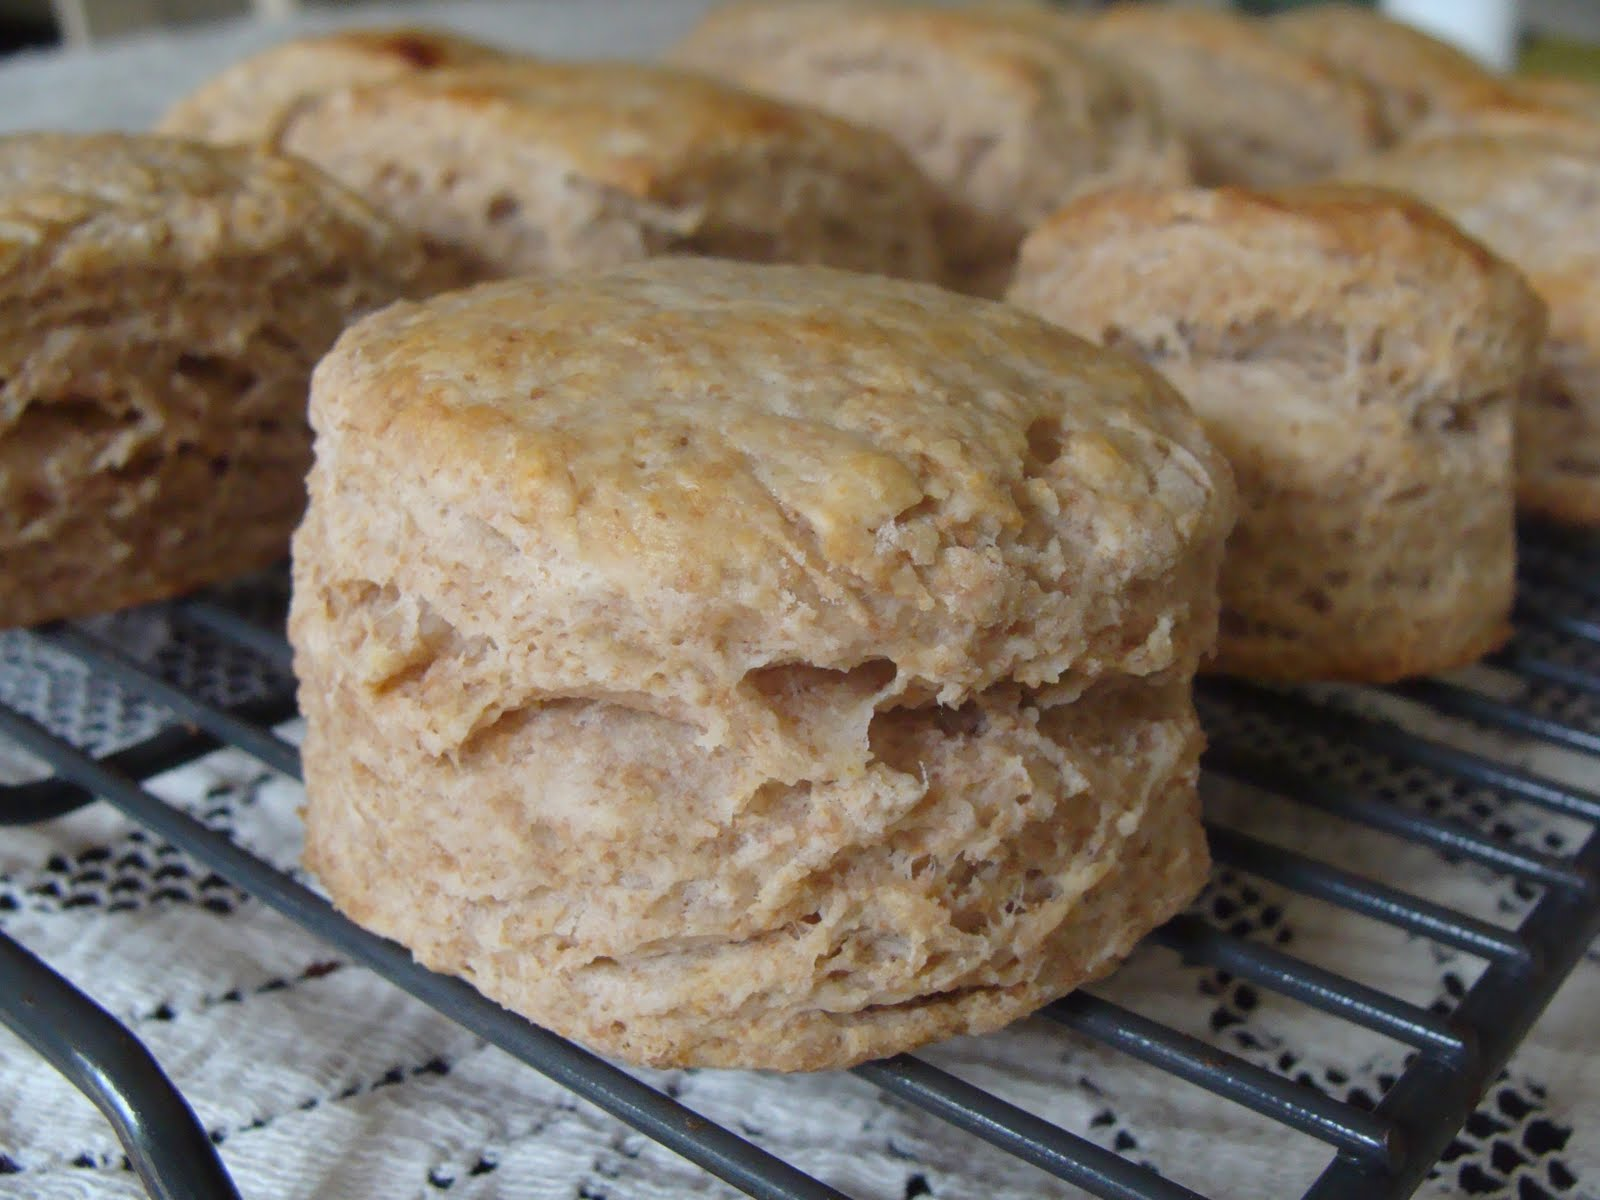 Back To Basics: Simple Breads To Make